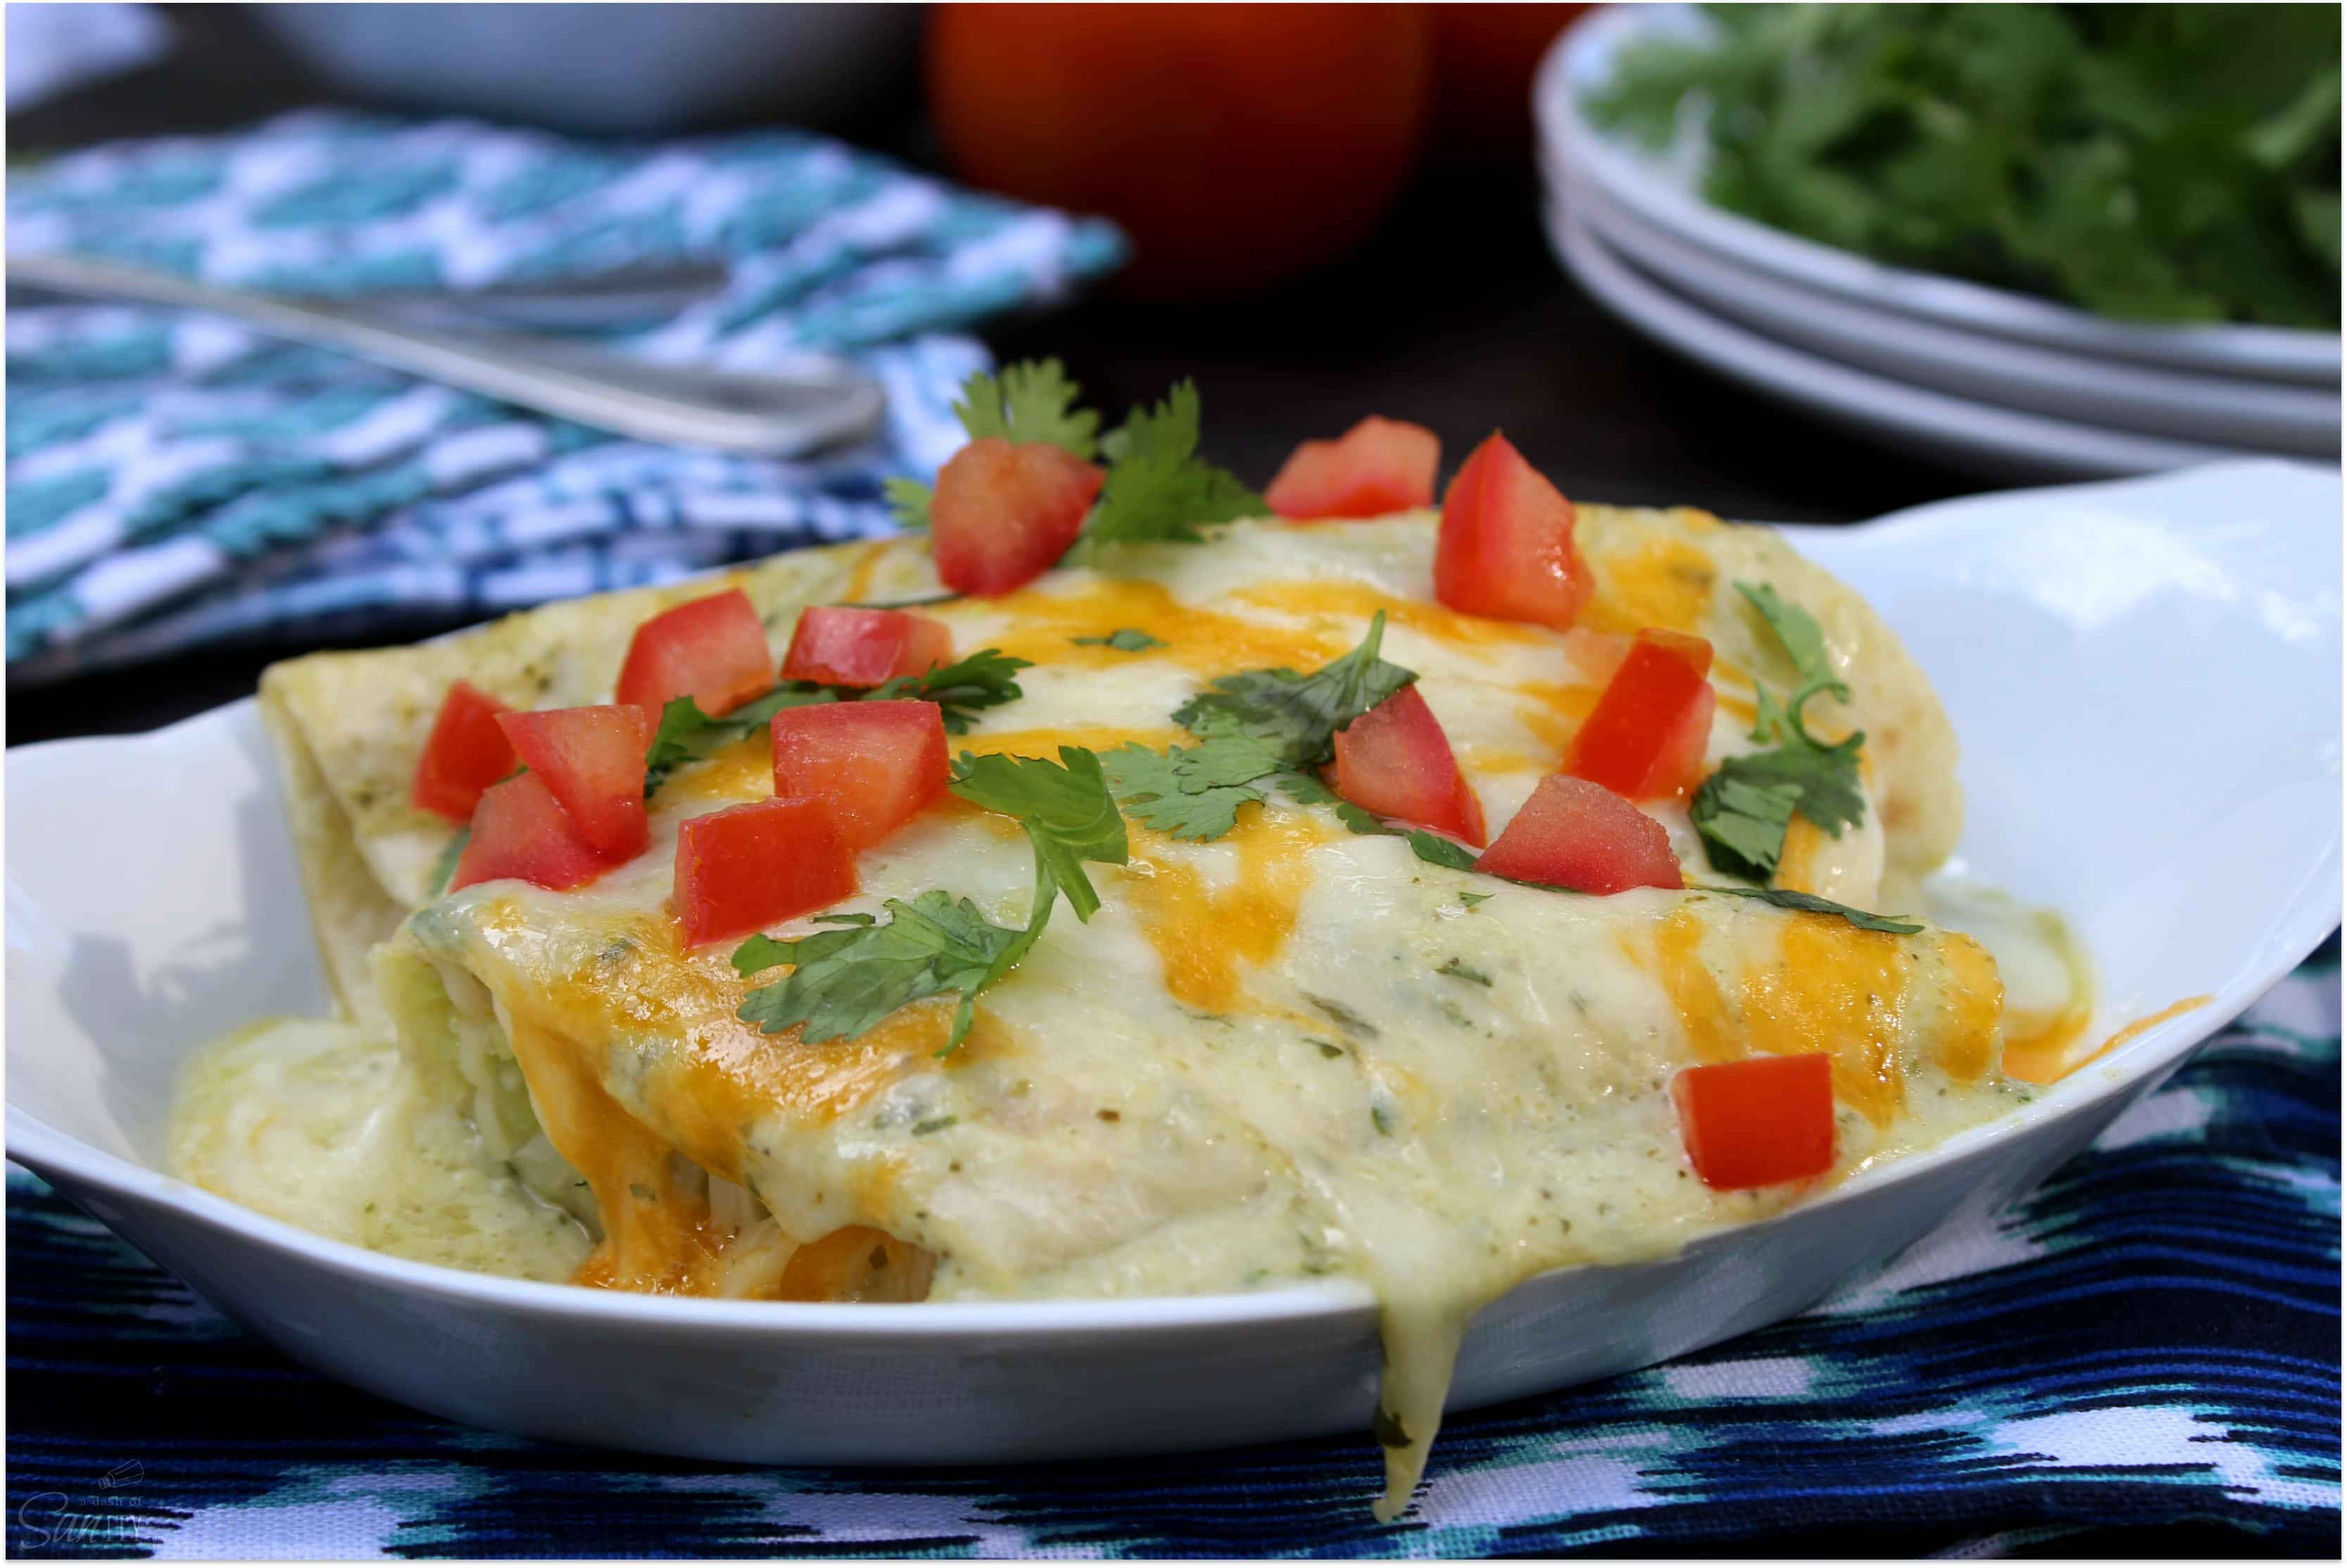 These Zucchini Enchiladas with Roasted Green Chile Sauce are honestly the best you will ever have. You will never go back to a red sauce again.